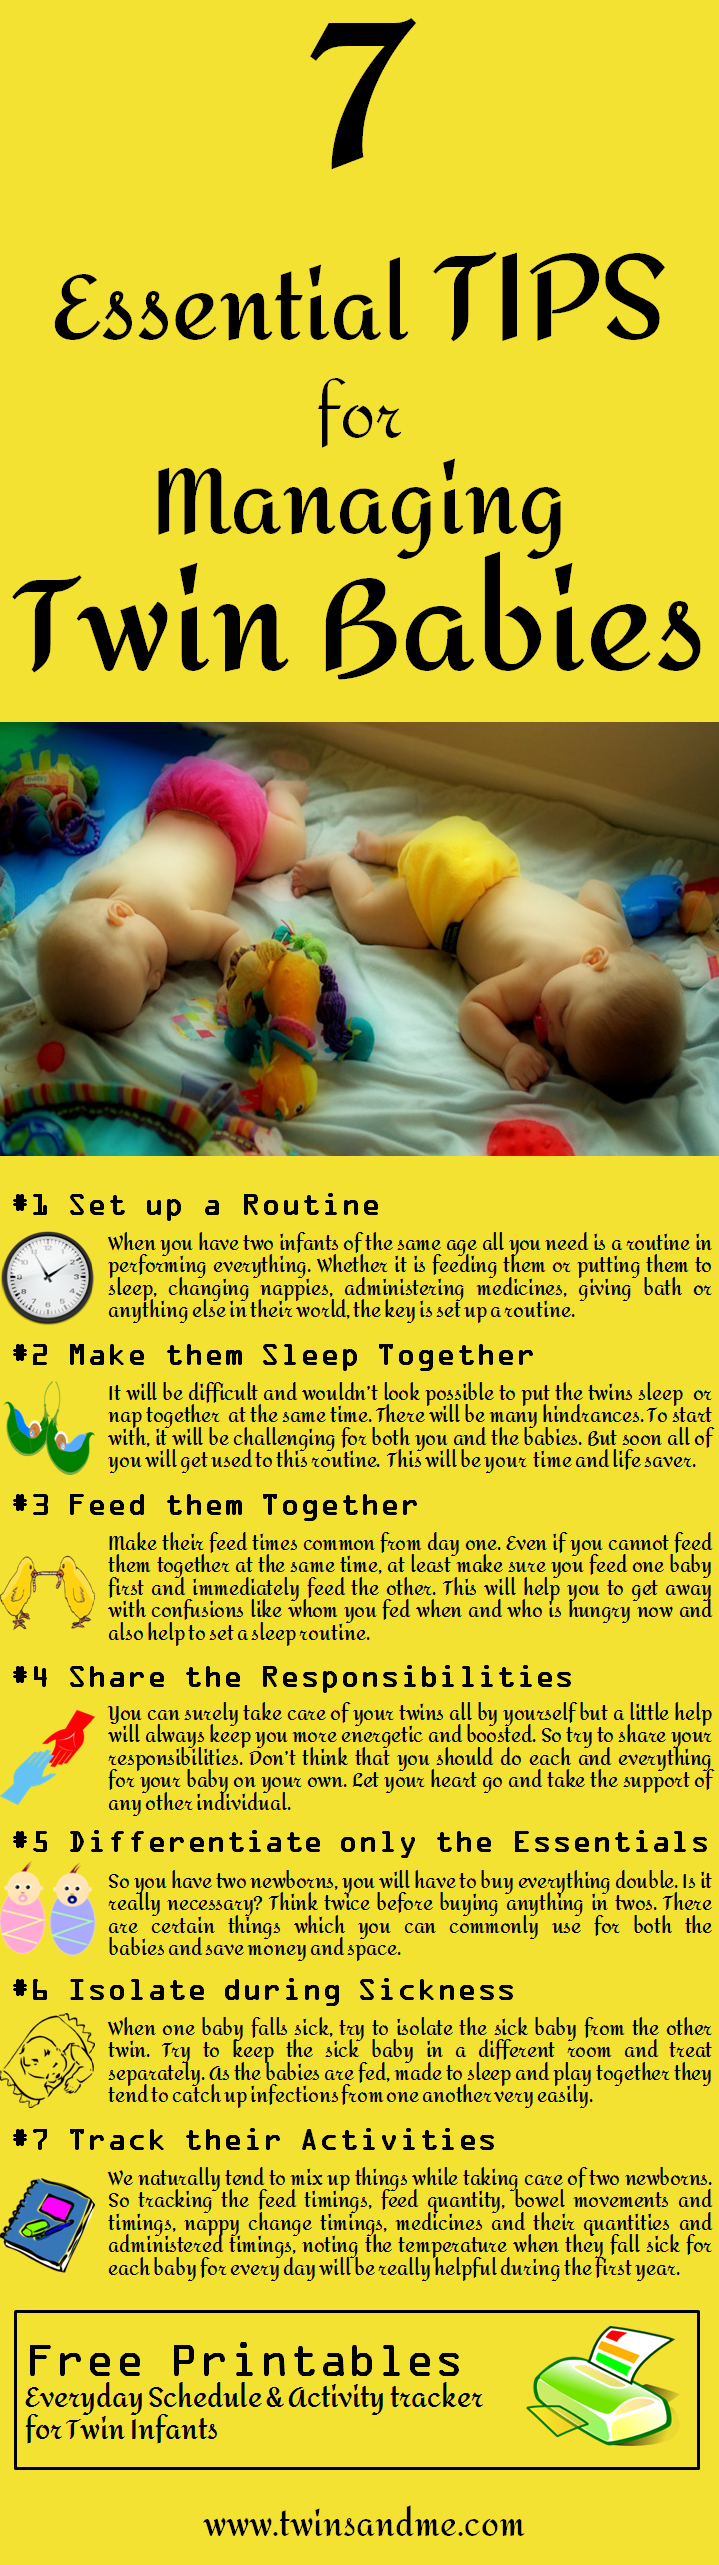 7 Essential tips for managing twin babies